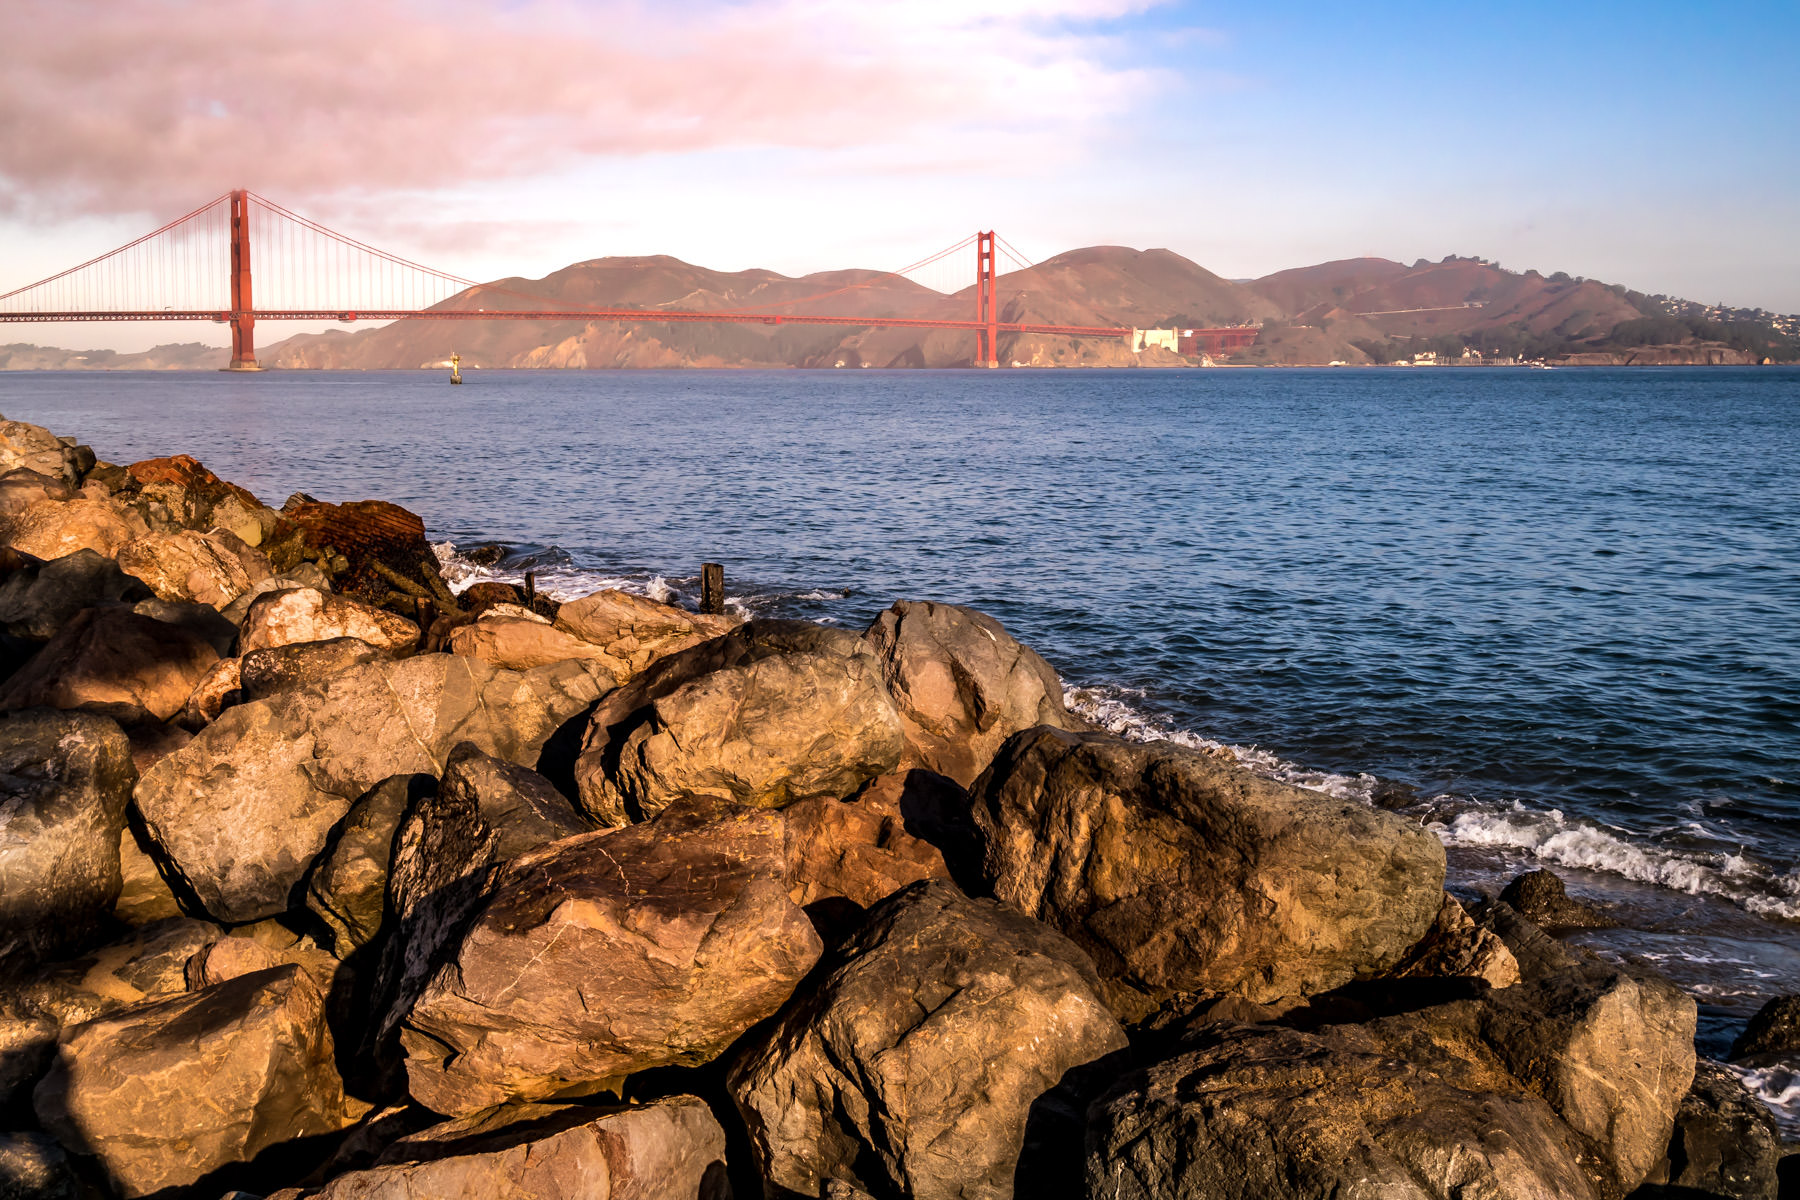 San Francisco's iconic Golden Gate Bridge spans its namesake narrows at the entrance to San Francisco Bay as seen from the rocky shoreline of nearby Crissy Field.